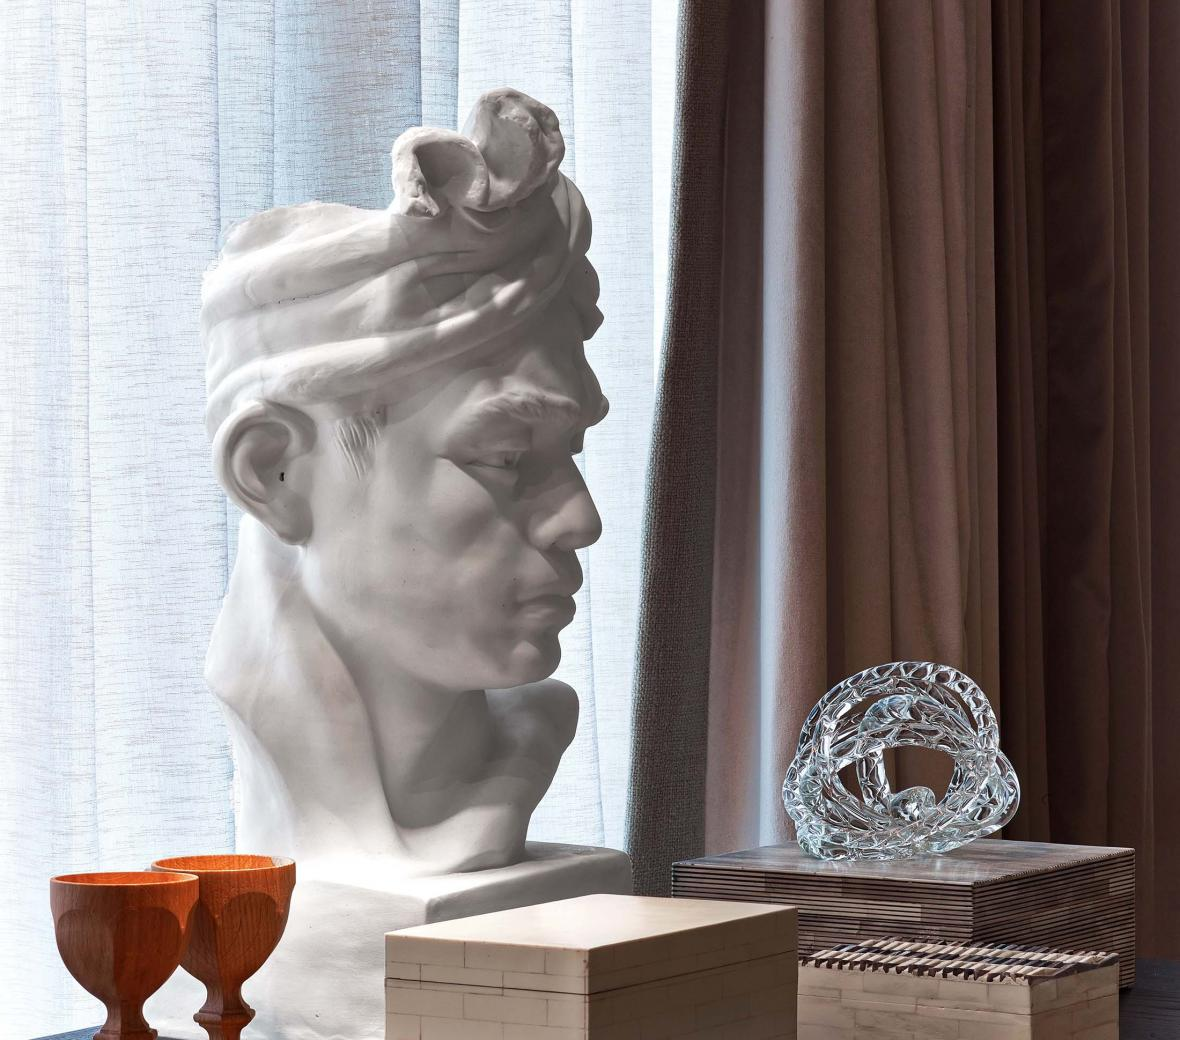 A decorative bust on a writing desk